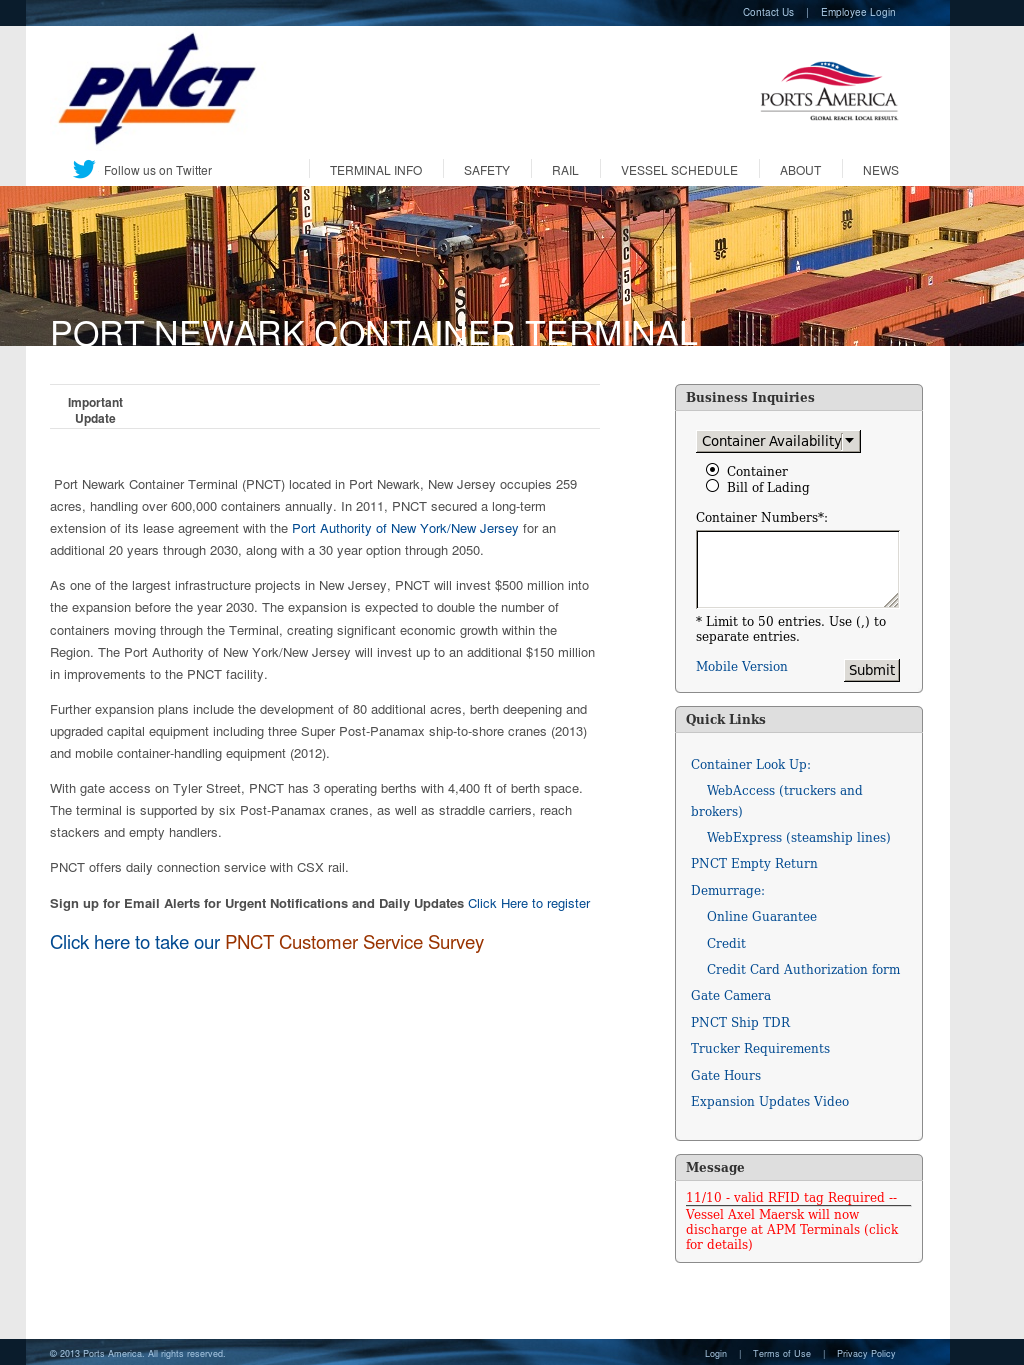 Port Newark Container Terminal Competitors, Revenue and Employees